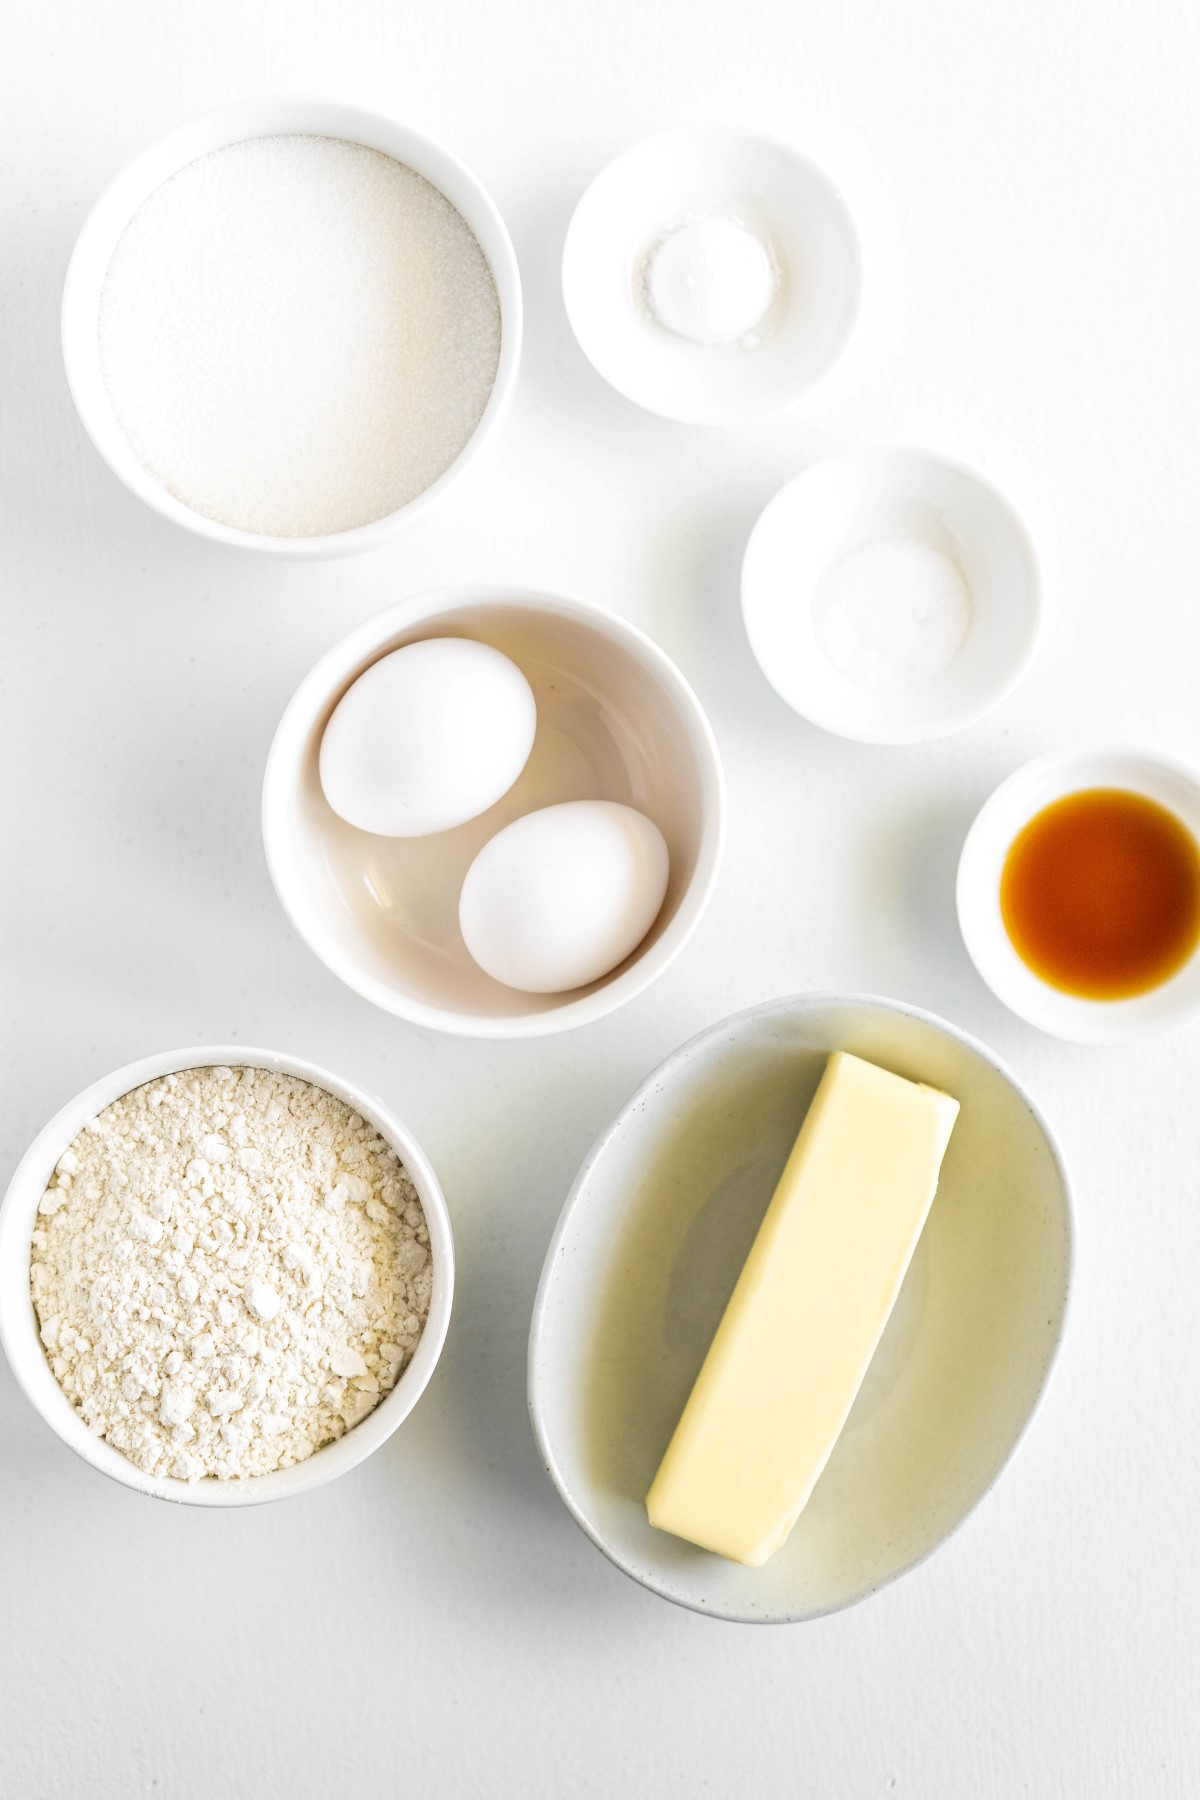 Ingredients for Pound Cake Cupcakes